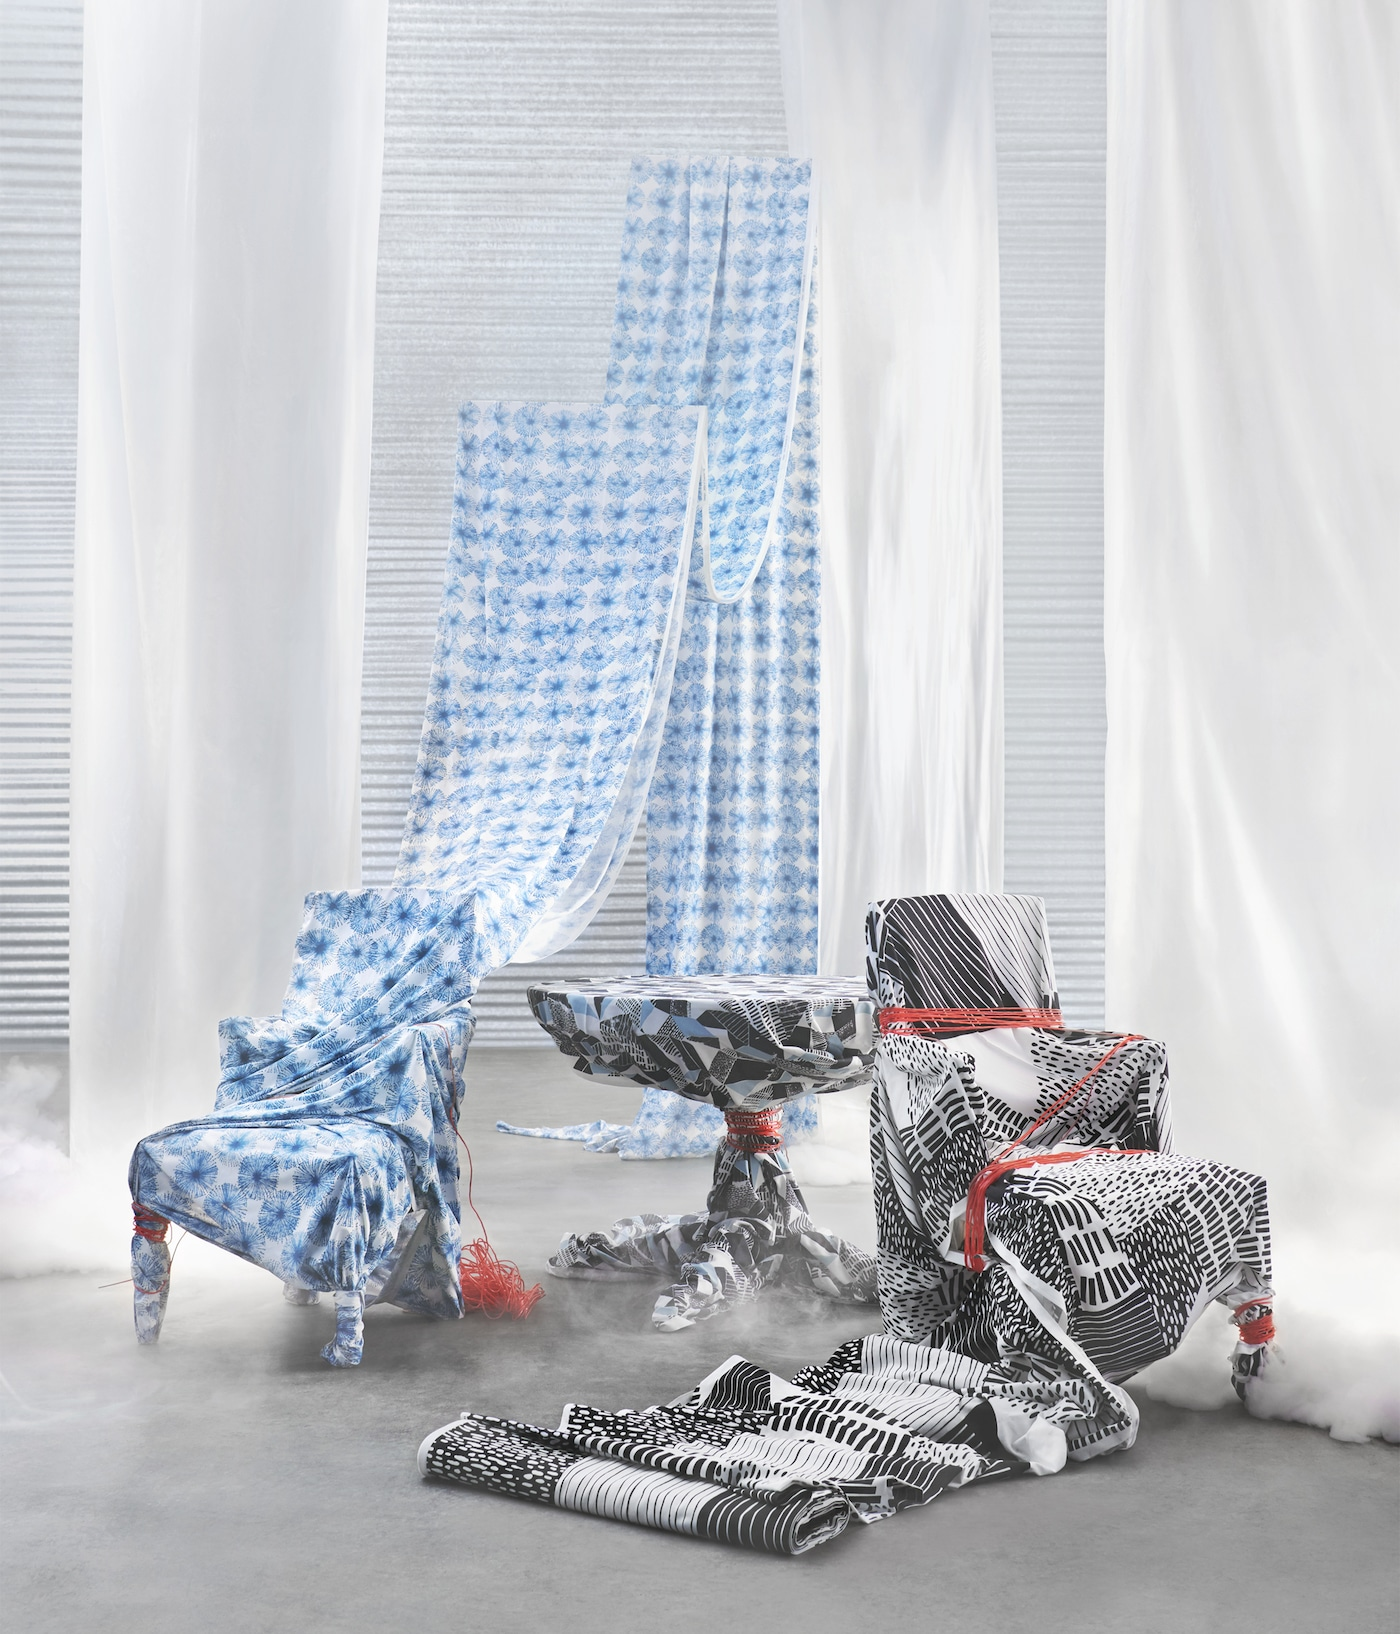 The new IKEA fabrics open up a whole new world of possibilities for creating anything from curtains to making art! The fabrics come in black and white graphic patterns or blue flower pattern. All made of 100% cotton from more sustainable sources.